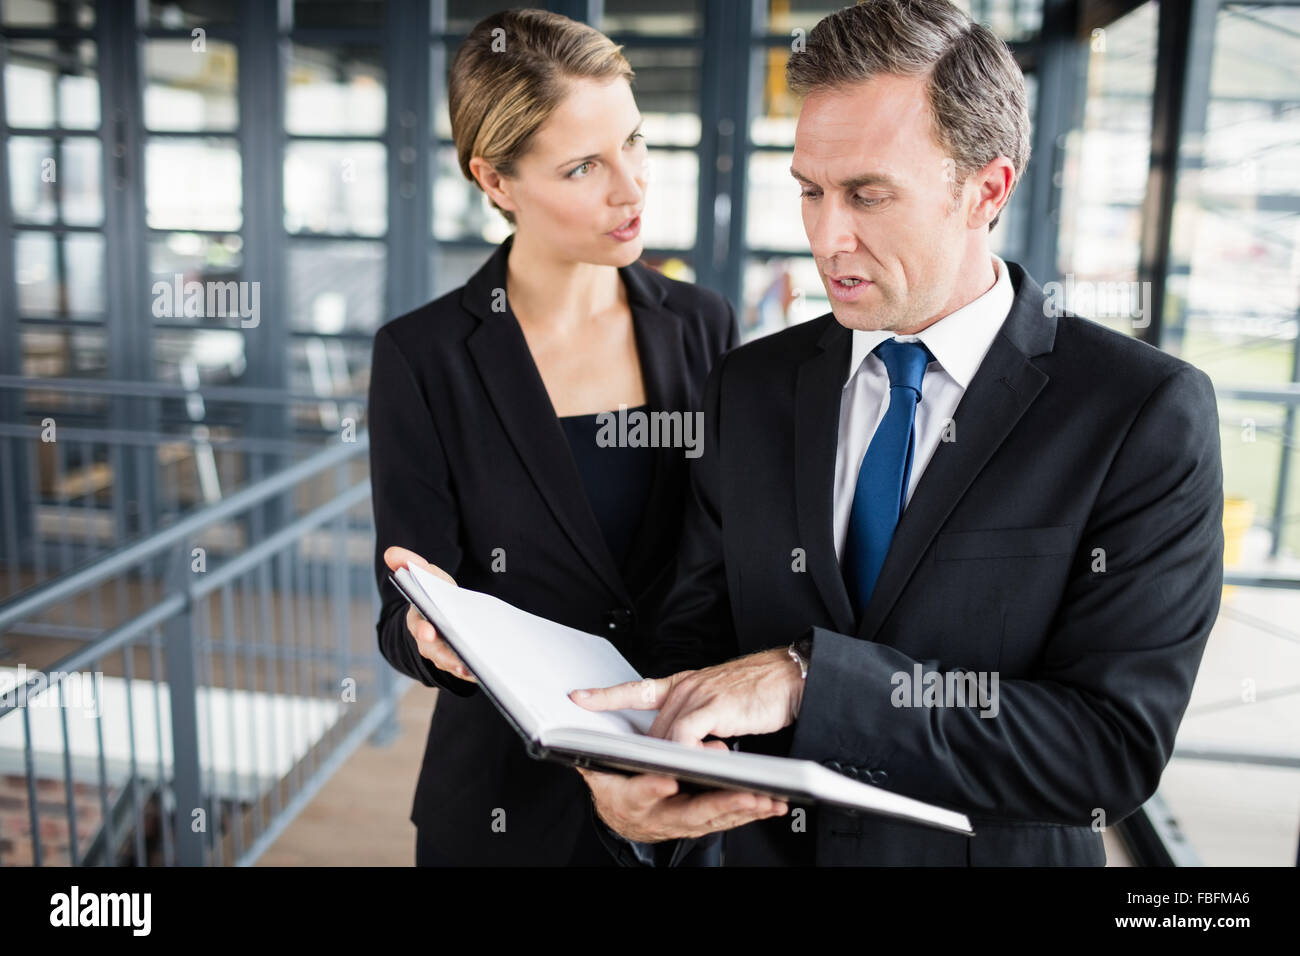 Business people discussing about a file - Stock Image